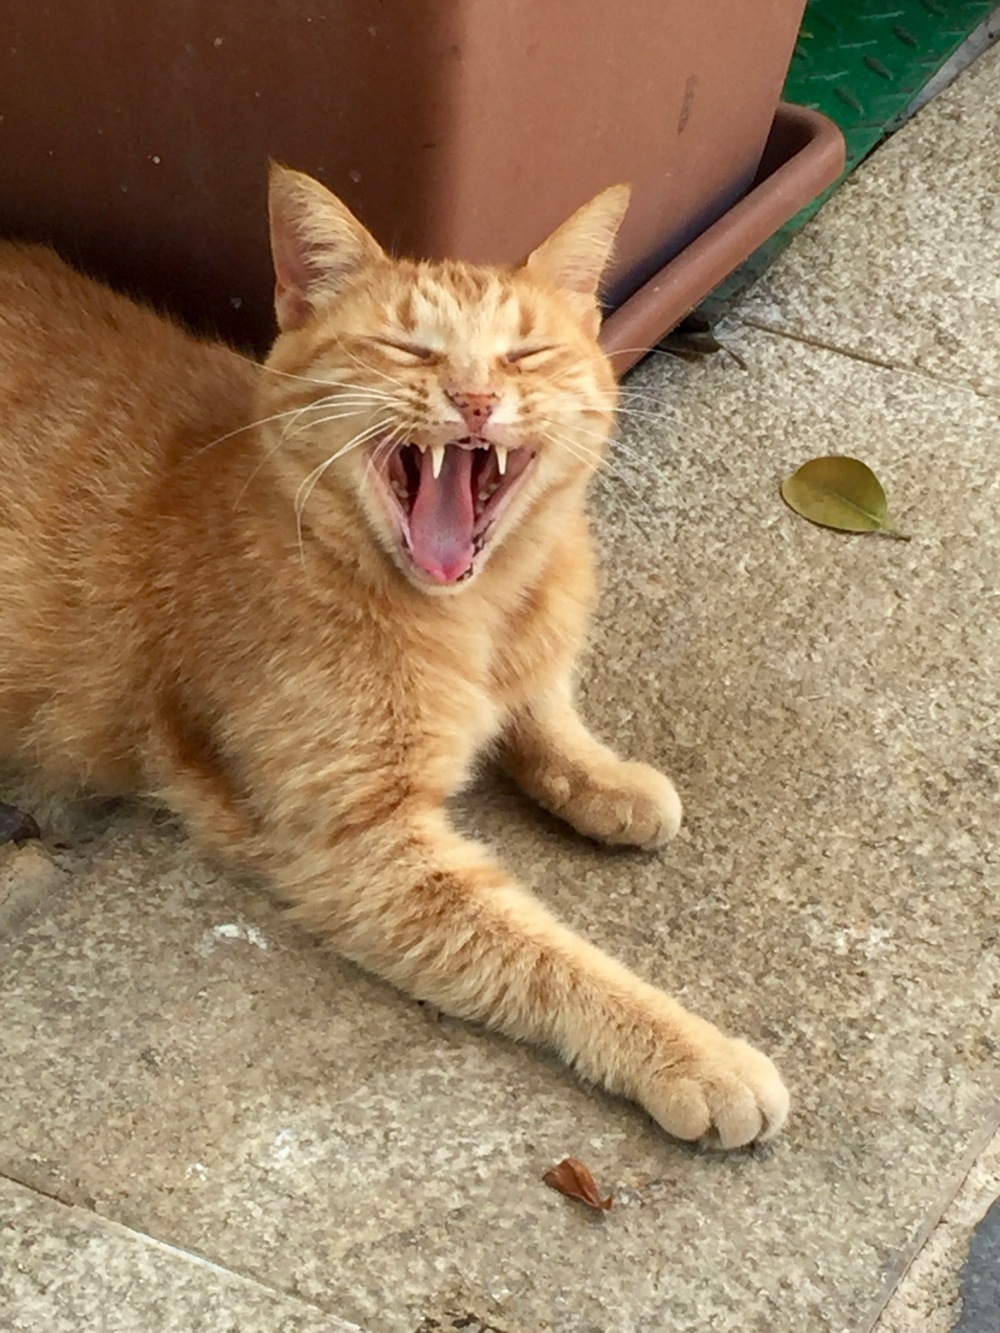 Yawning in Malta!? Who do you think you are, cat!